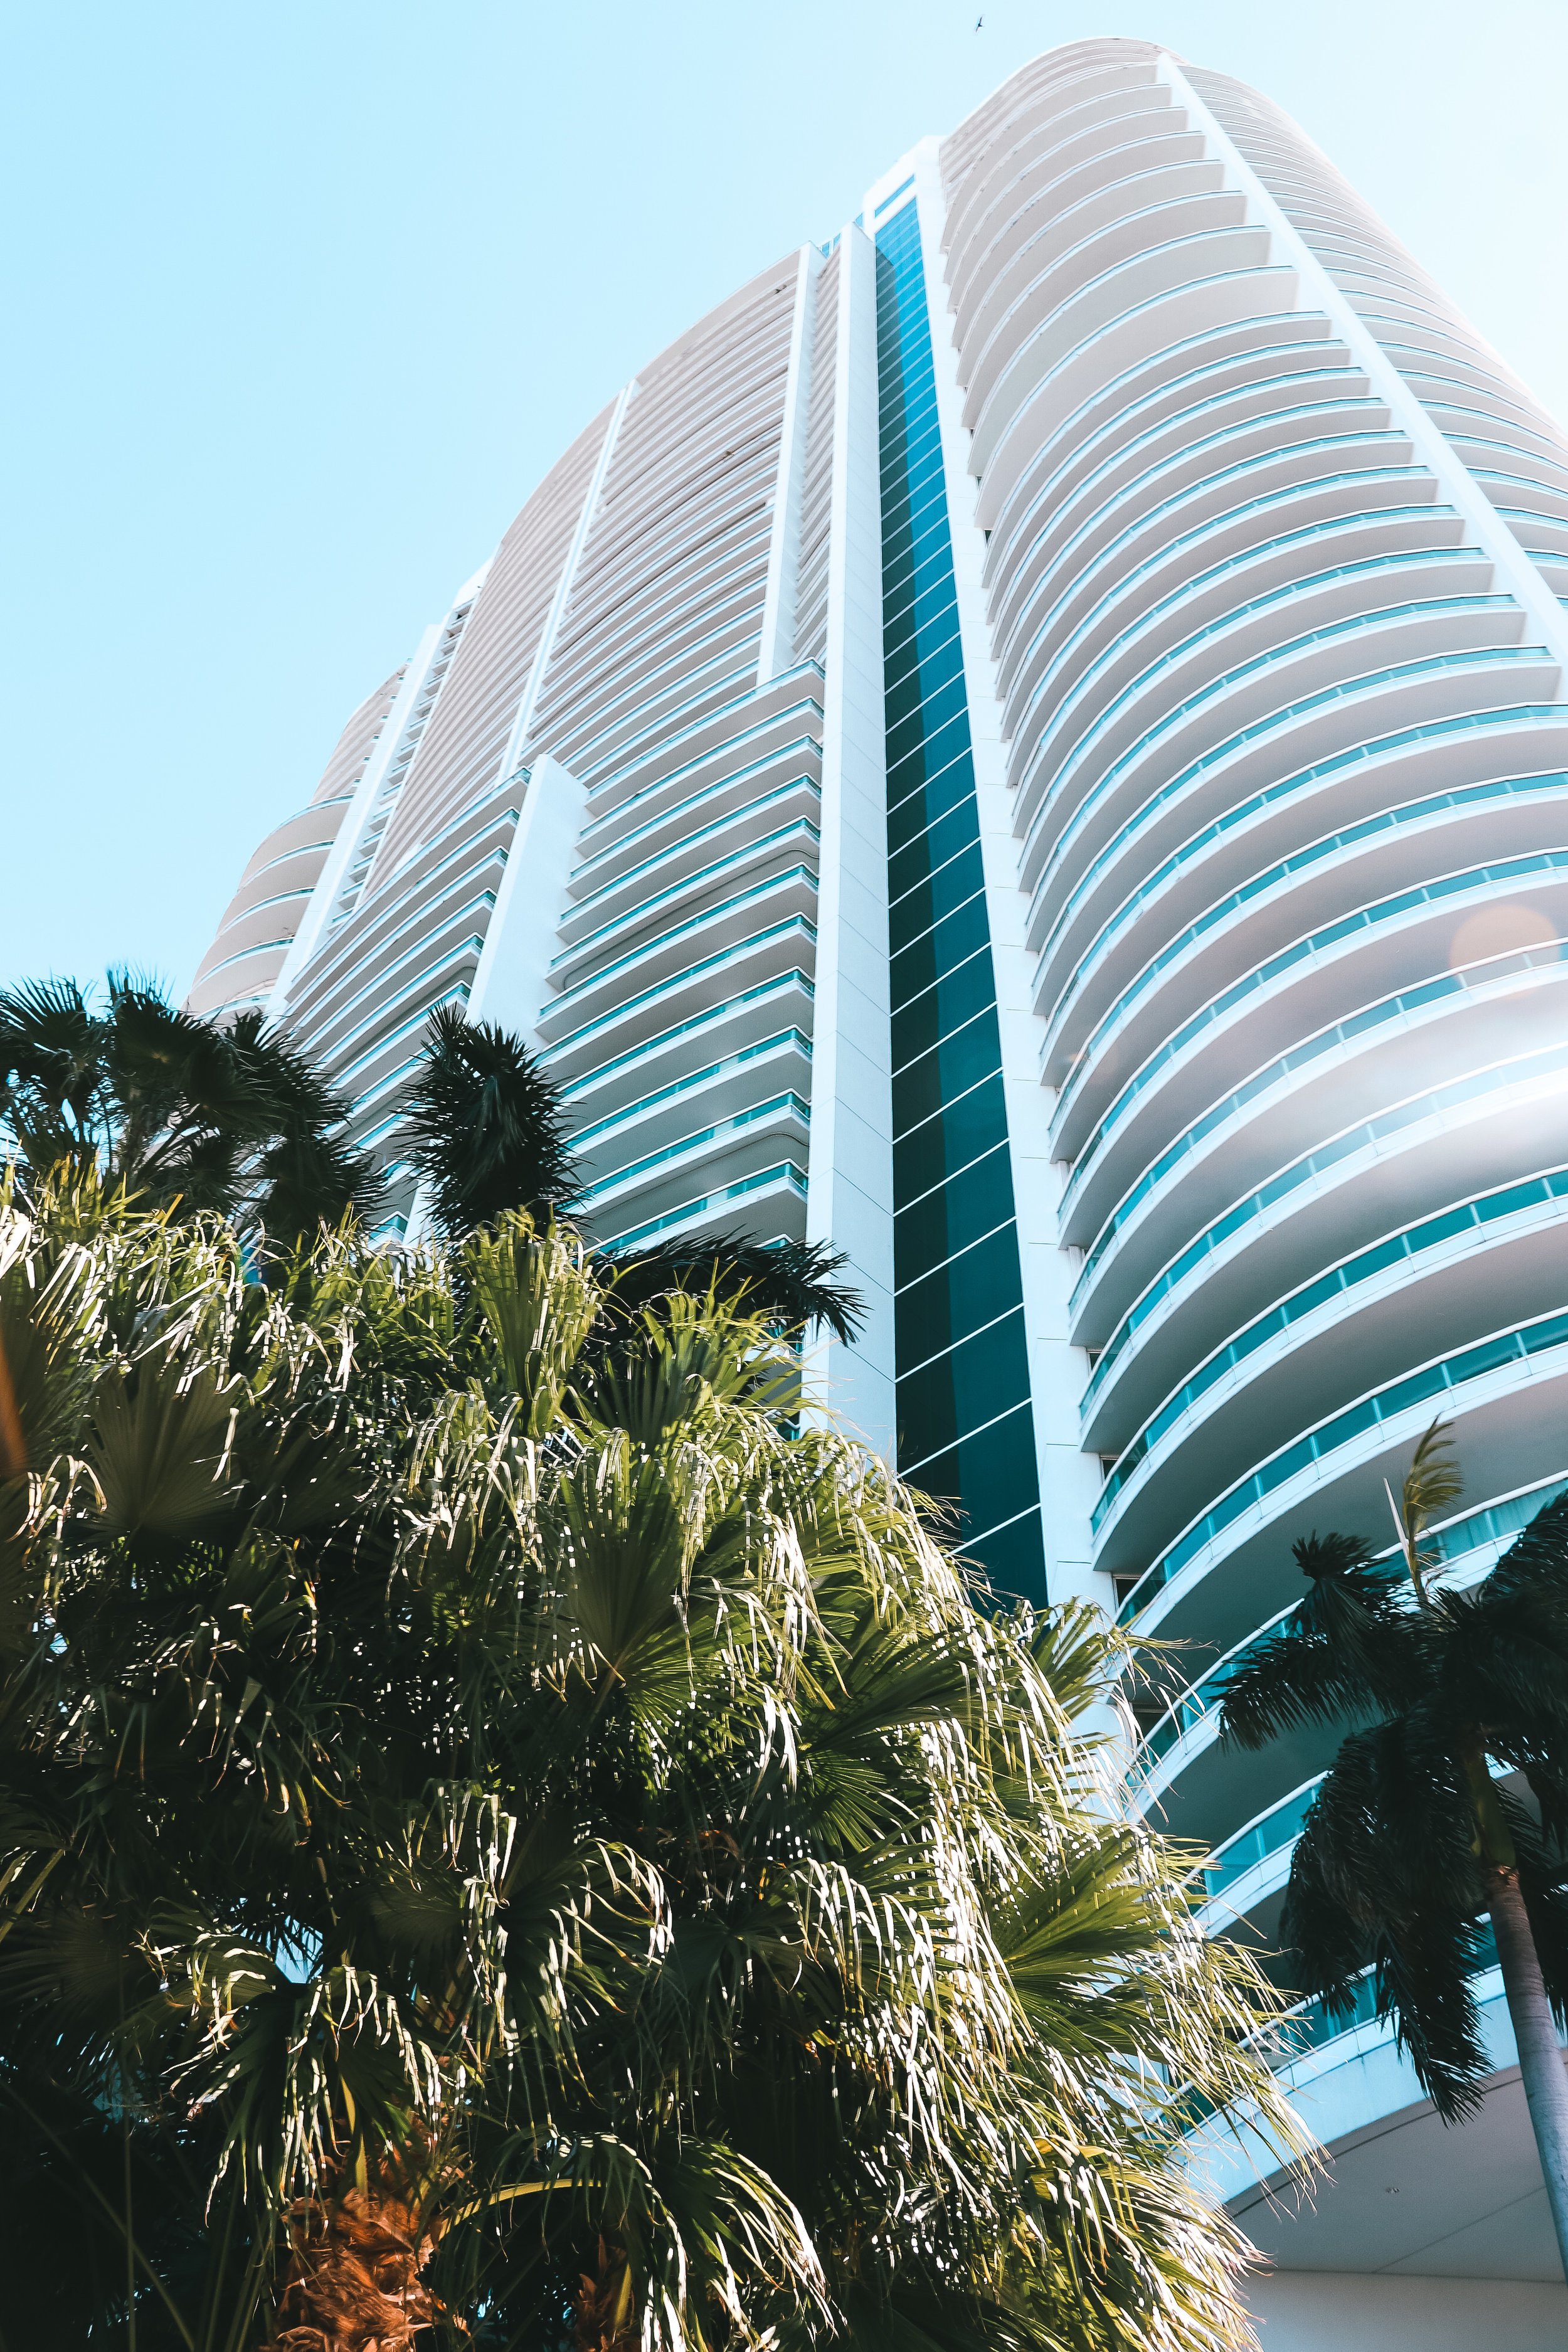 Bristol Tower - Name: Bristol TowerAddress: 2127 Brickell Avenue, Miami, FL 33129Number of Units: 147Info: Jay Solowsky, President | Fred Perez, LCAM, Property Manager